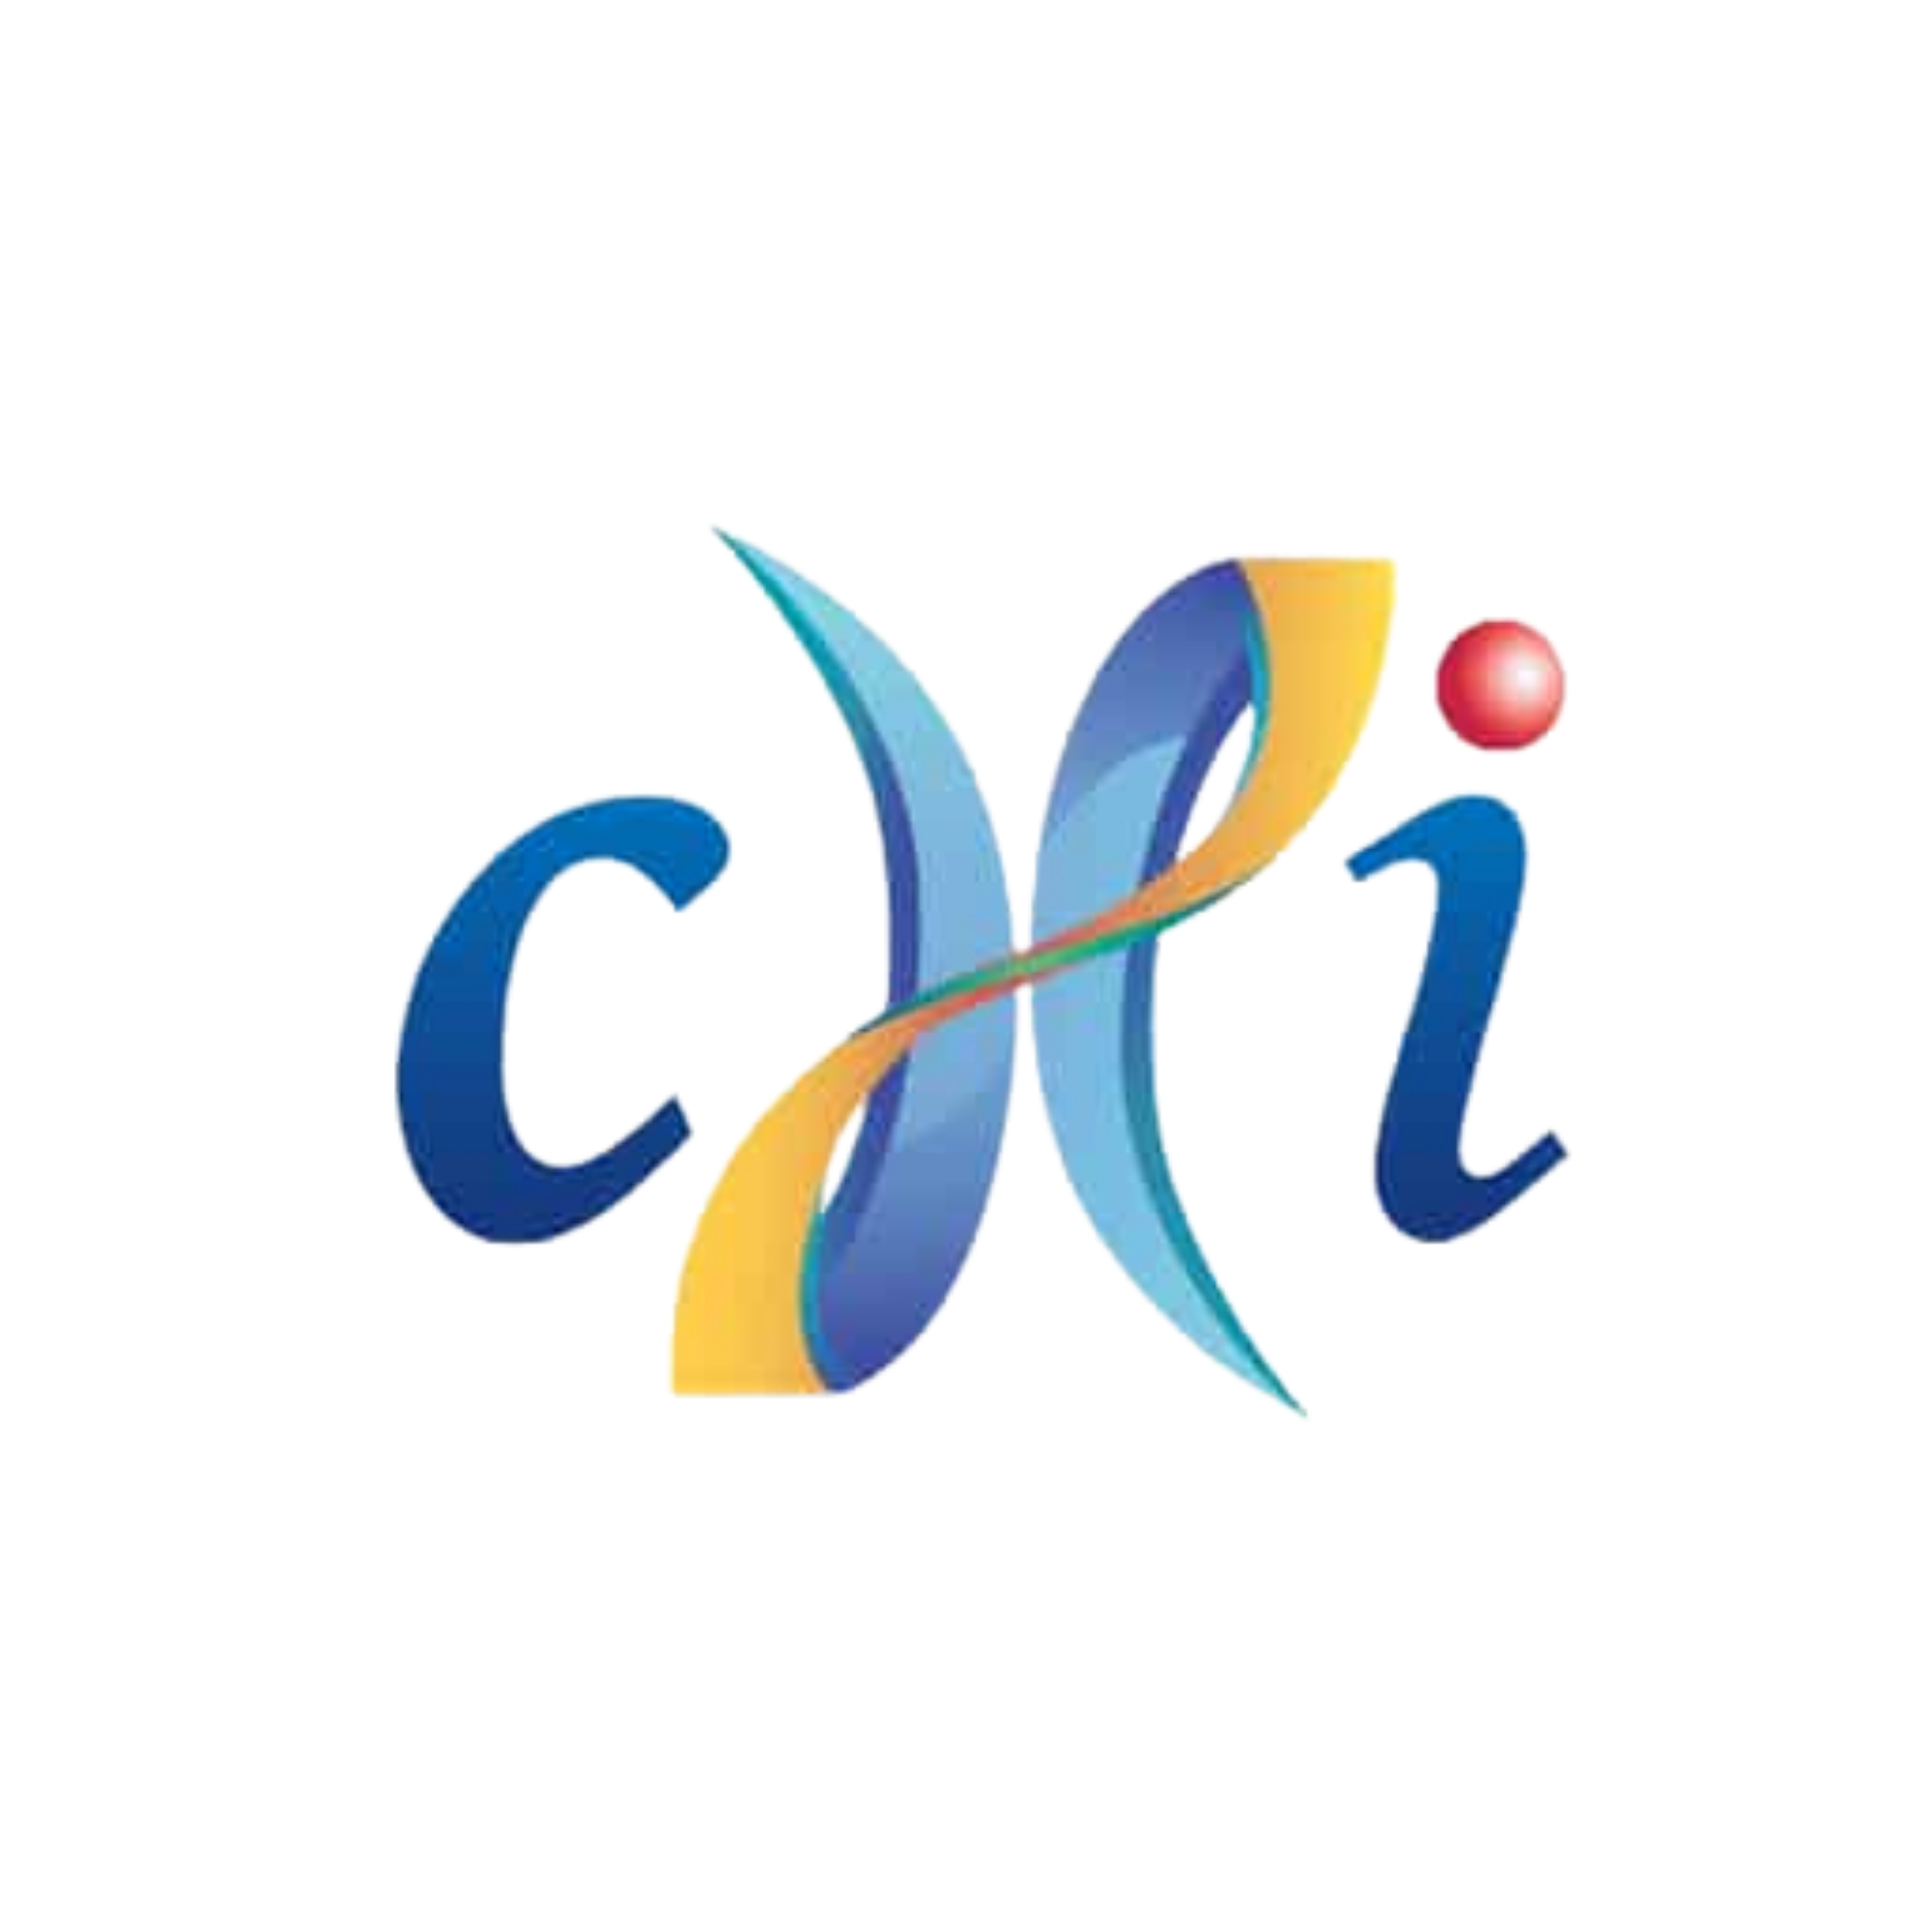 Transparent small version of the CHI logo.